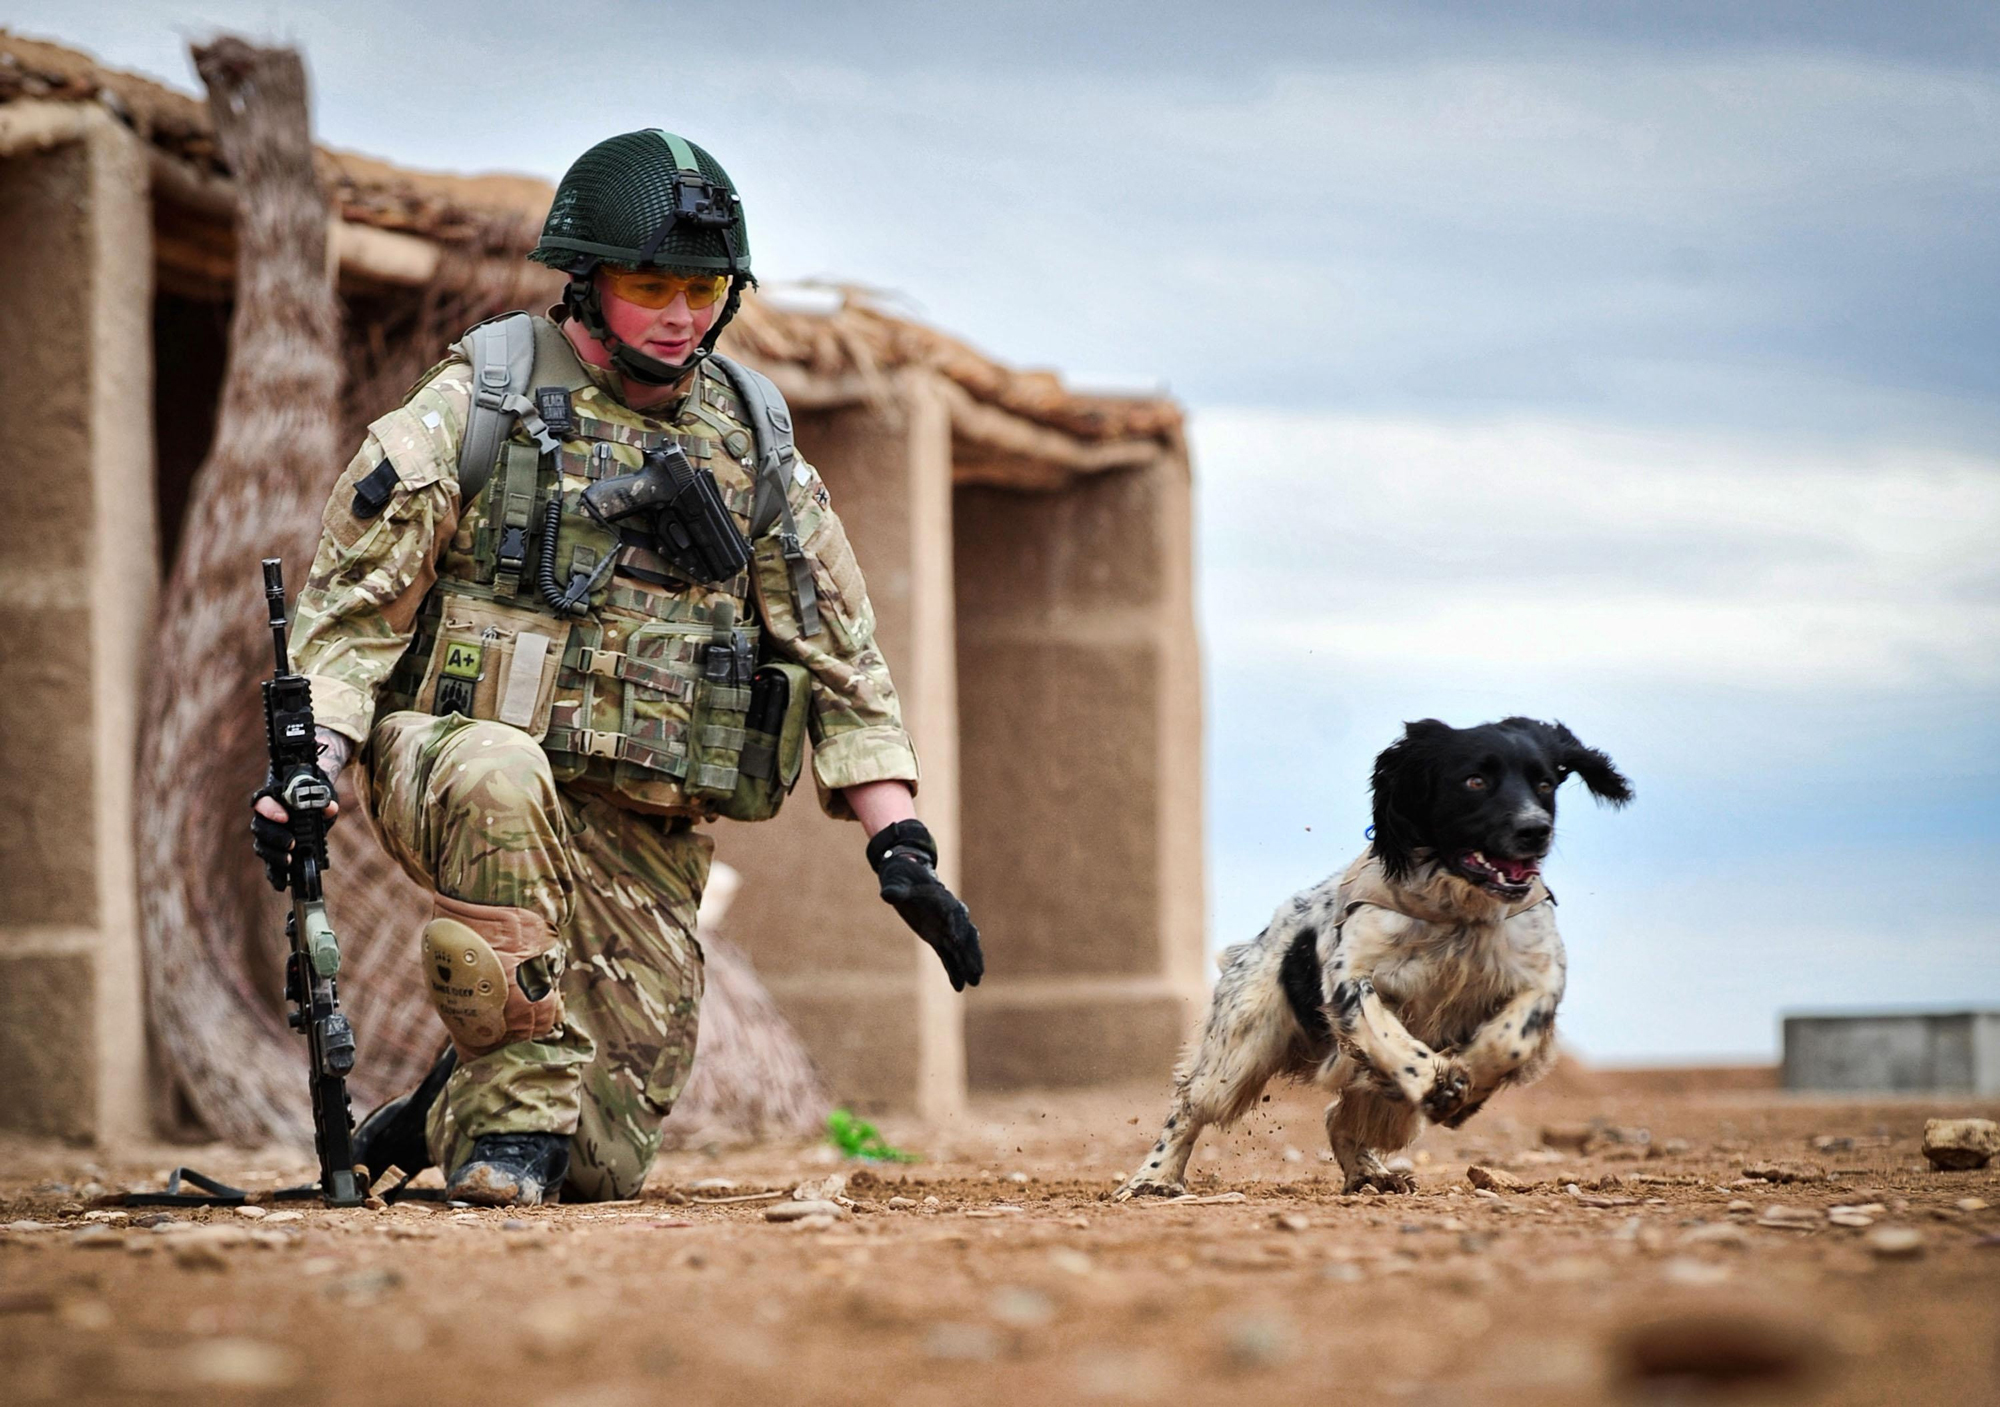 Liam Tasker, with his Military Working Dog, Theo, training in Camp Bastion.